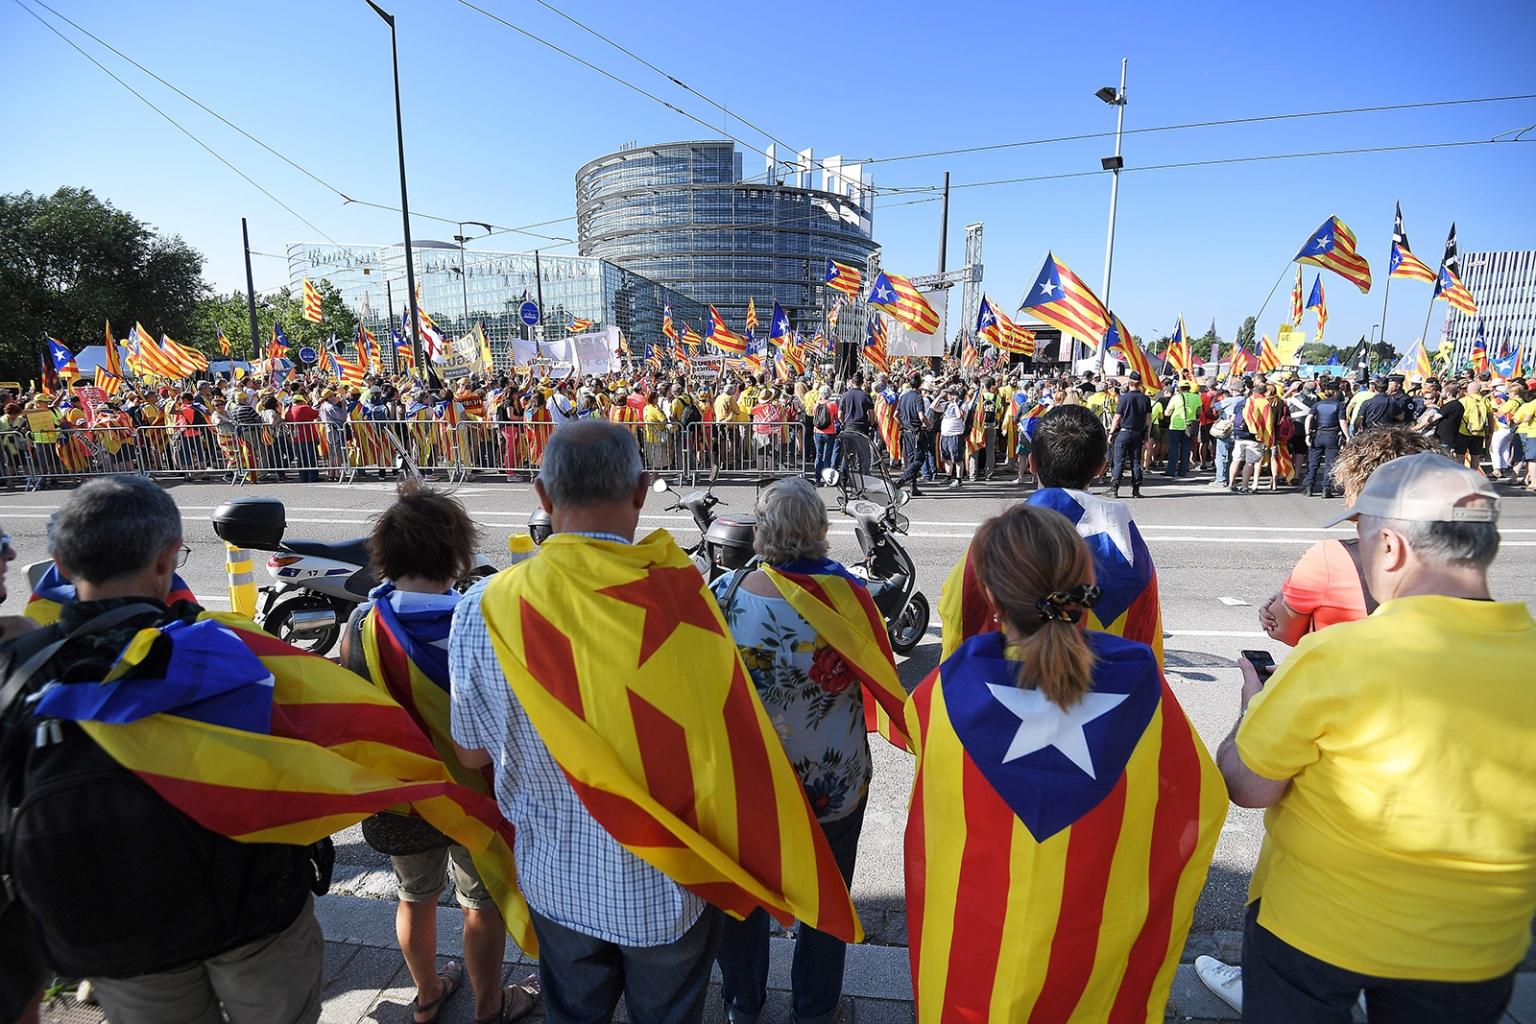 People wave Catalan pro-independence flags during a demonstration in front of the European Parliament in Strasbourge, France, on July 2. FREDERICK FLORIN/AFP/Getty Images